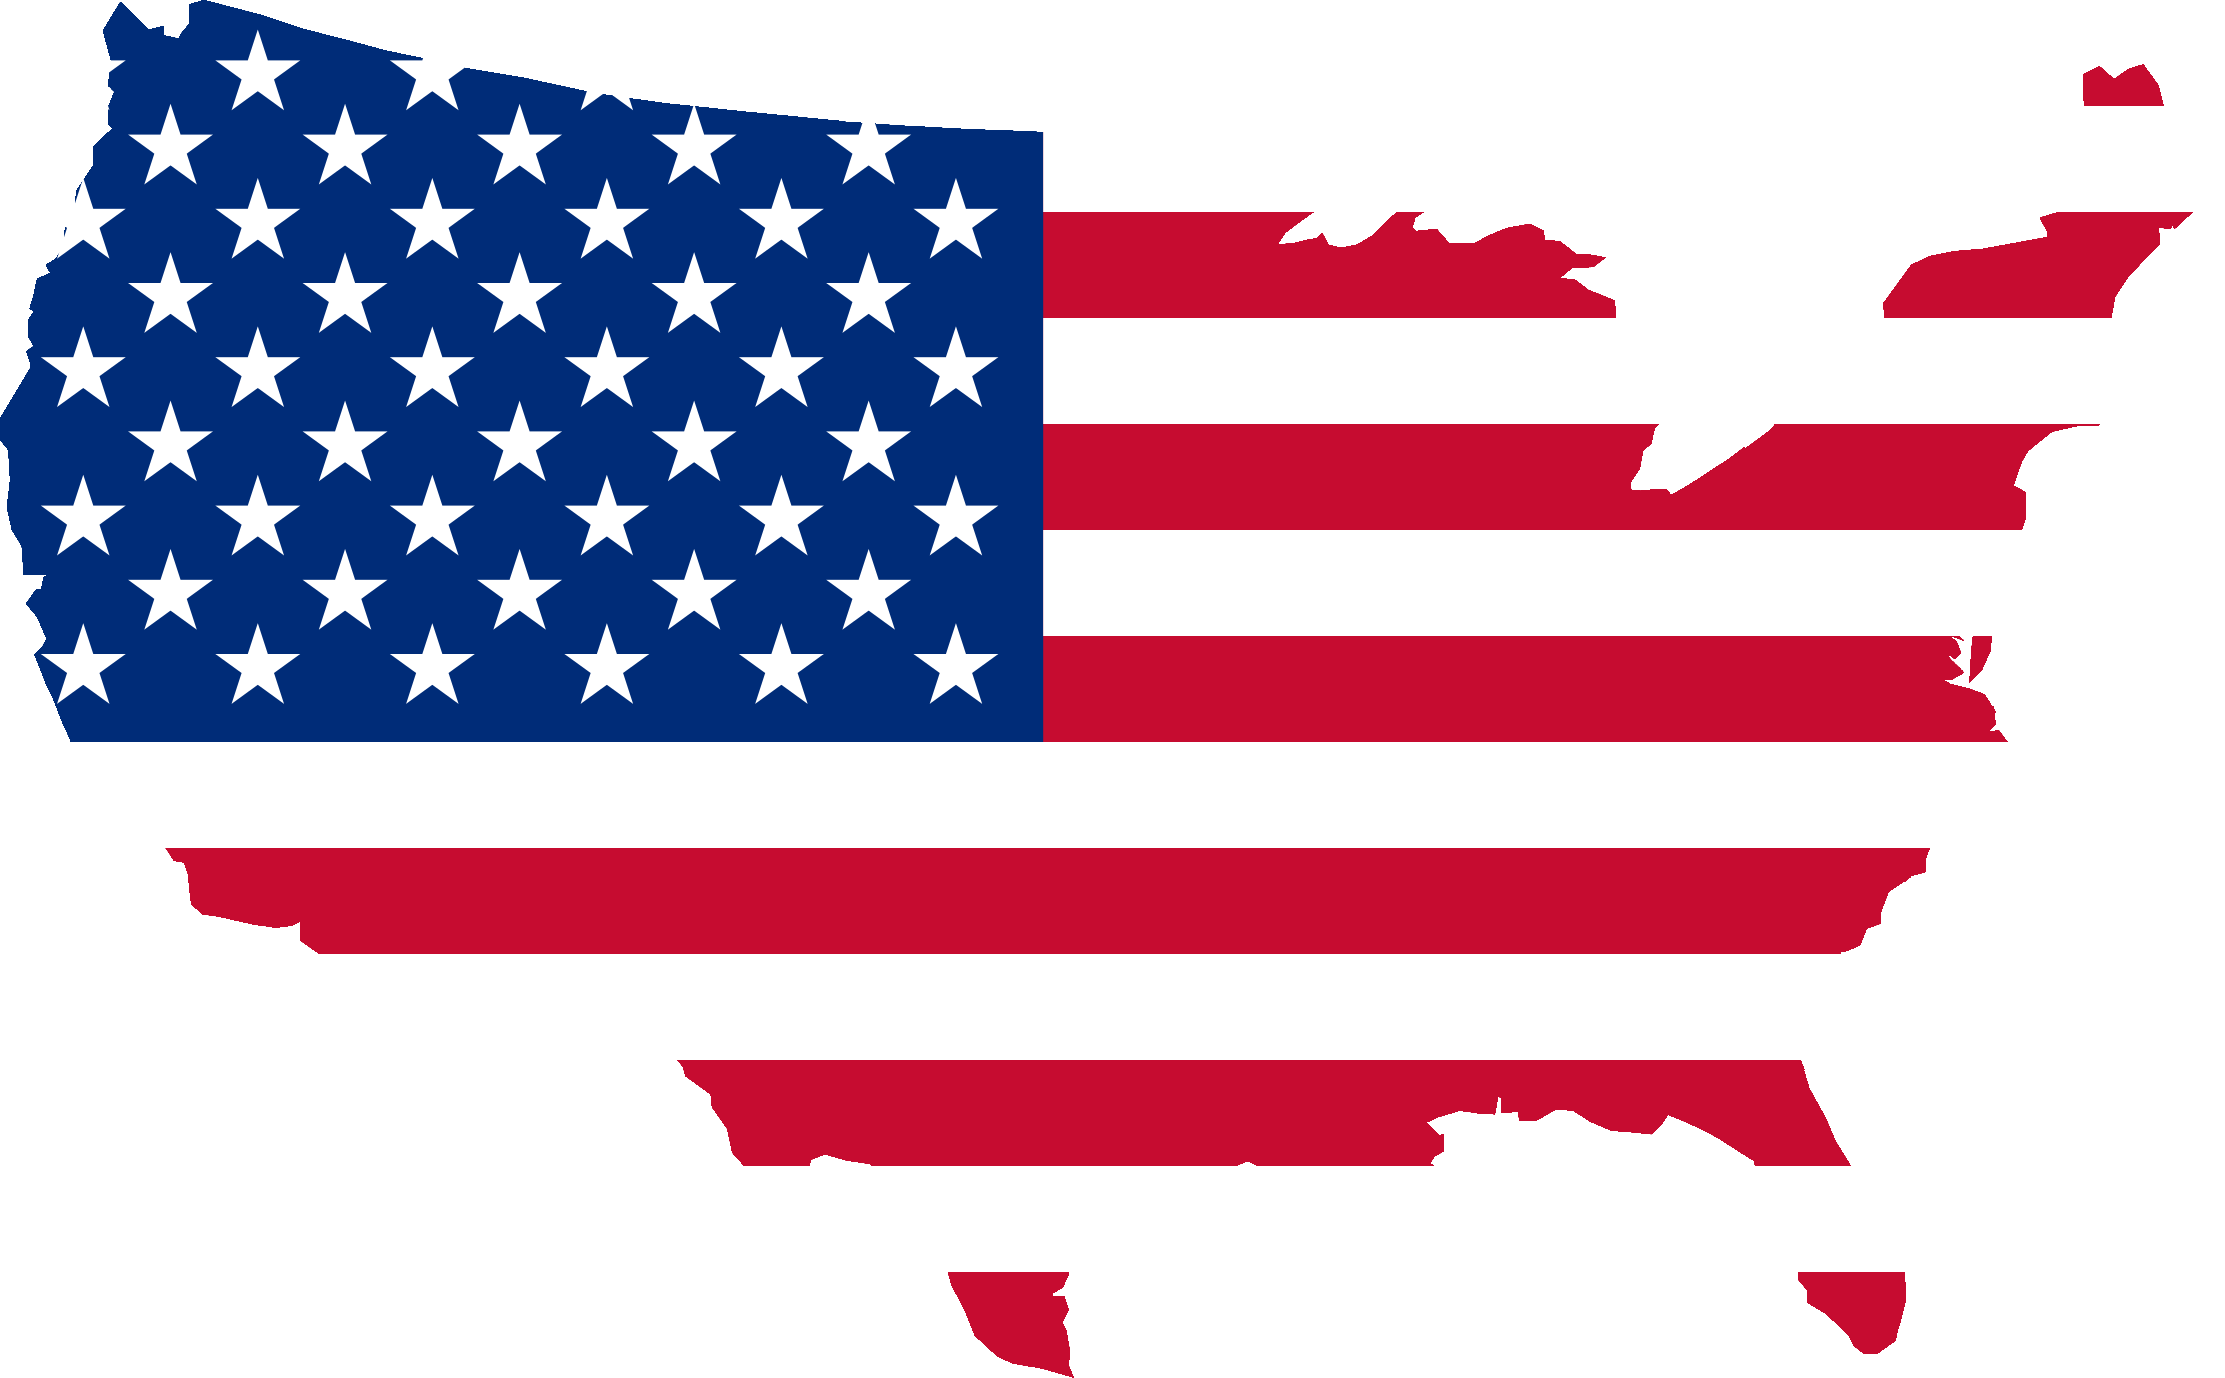 Usa letters png. Usapng